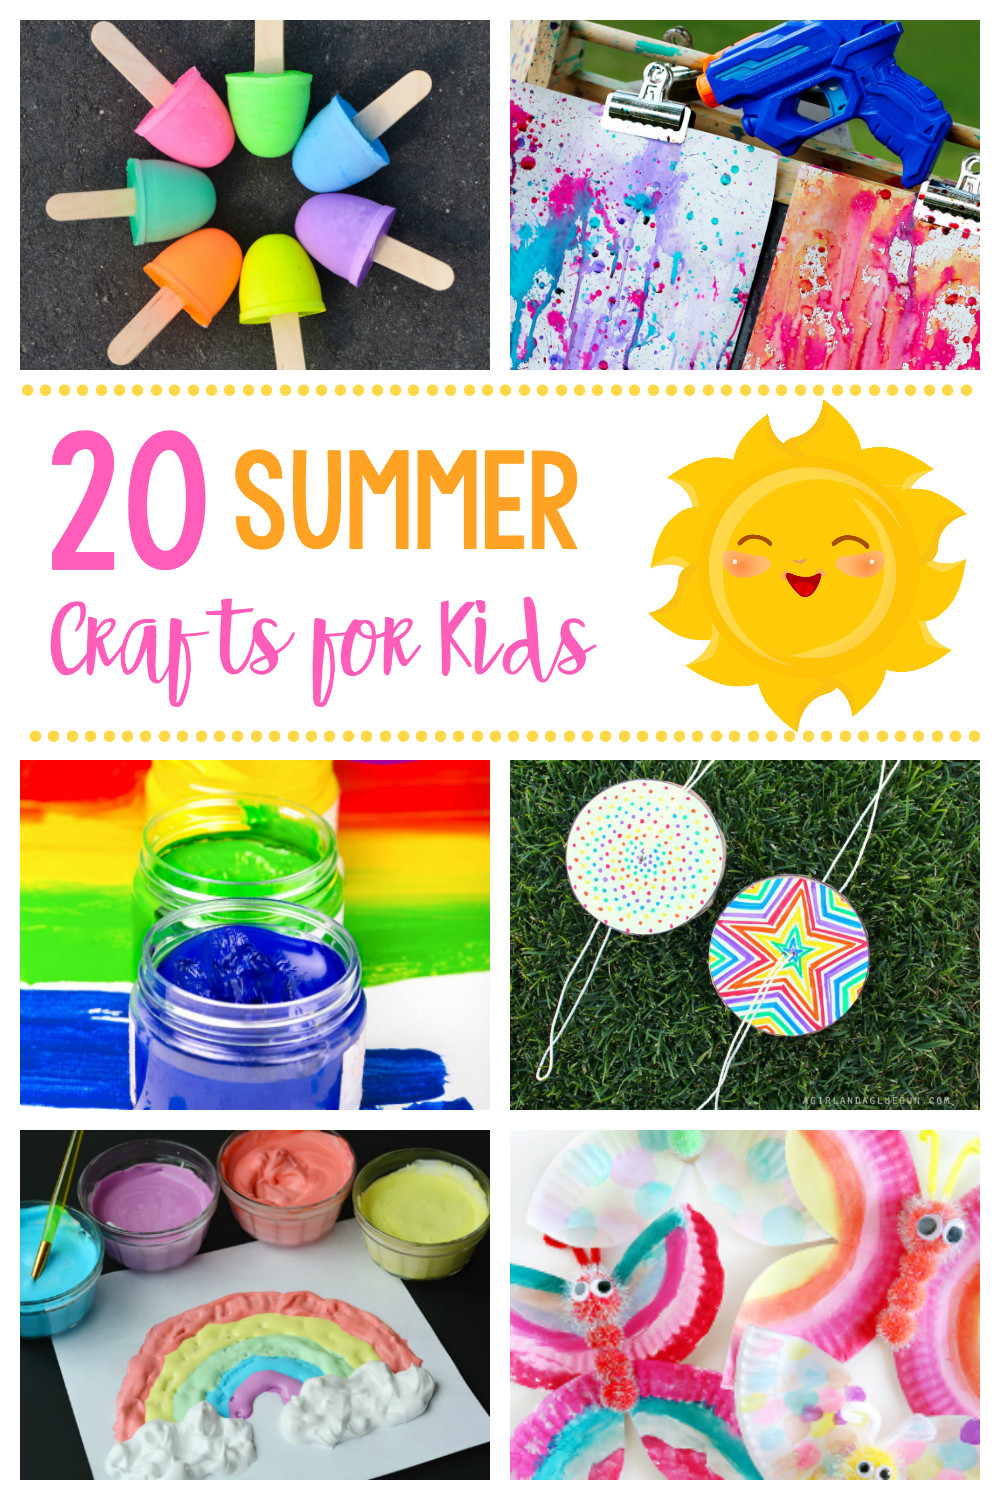 Best ideas about Simple Crafts For Toddlers . Save or Pin 20 Simple & Fun Summer Crafts for Kids Now.